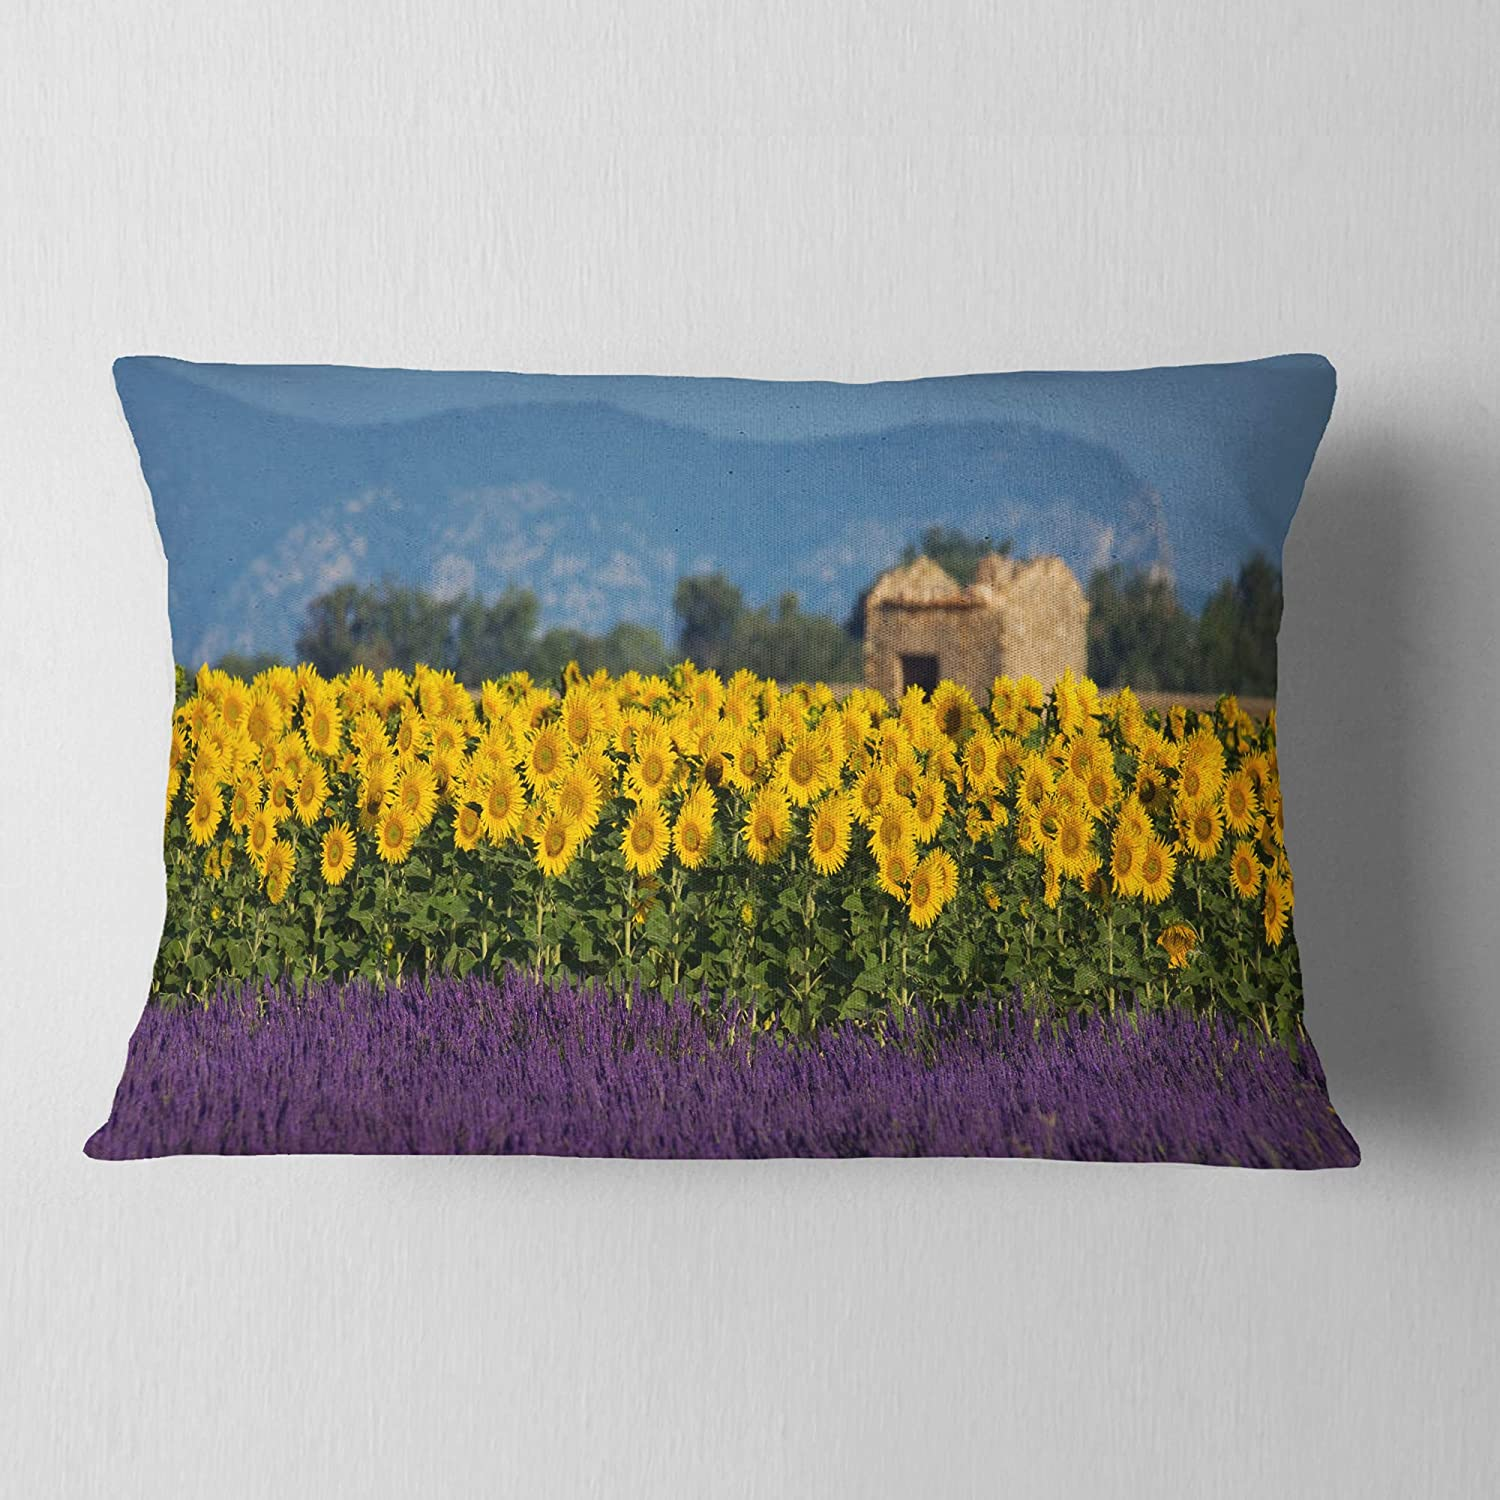 Designart CU13085-12-20 Lavender and Sunflower in Provence' Floral Lumbar Cushion Cover for Living Room, Sofa Throw Pillow, 12 in. x 20 in. in